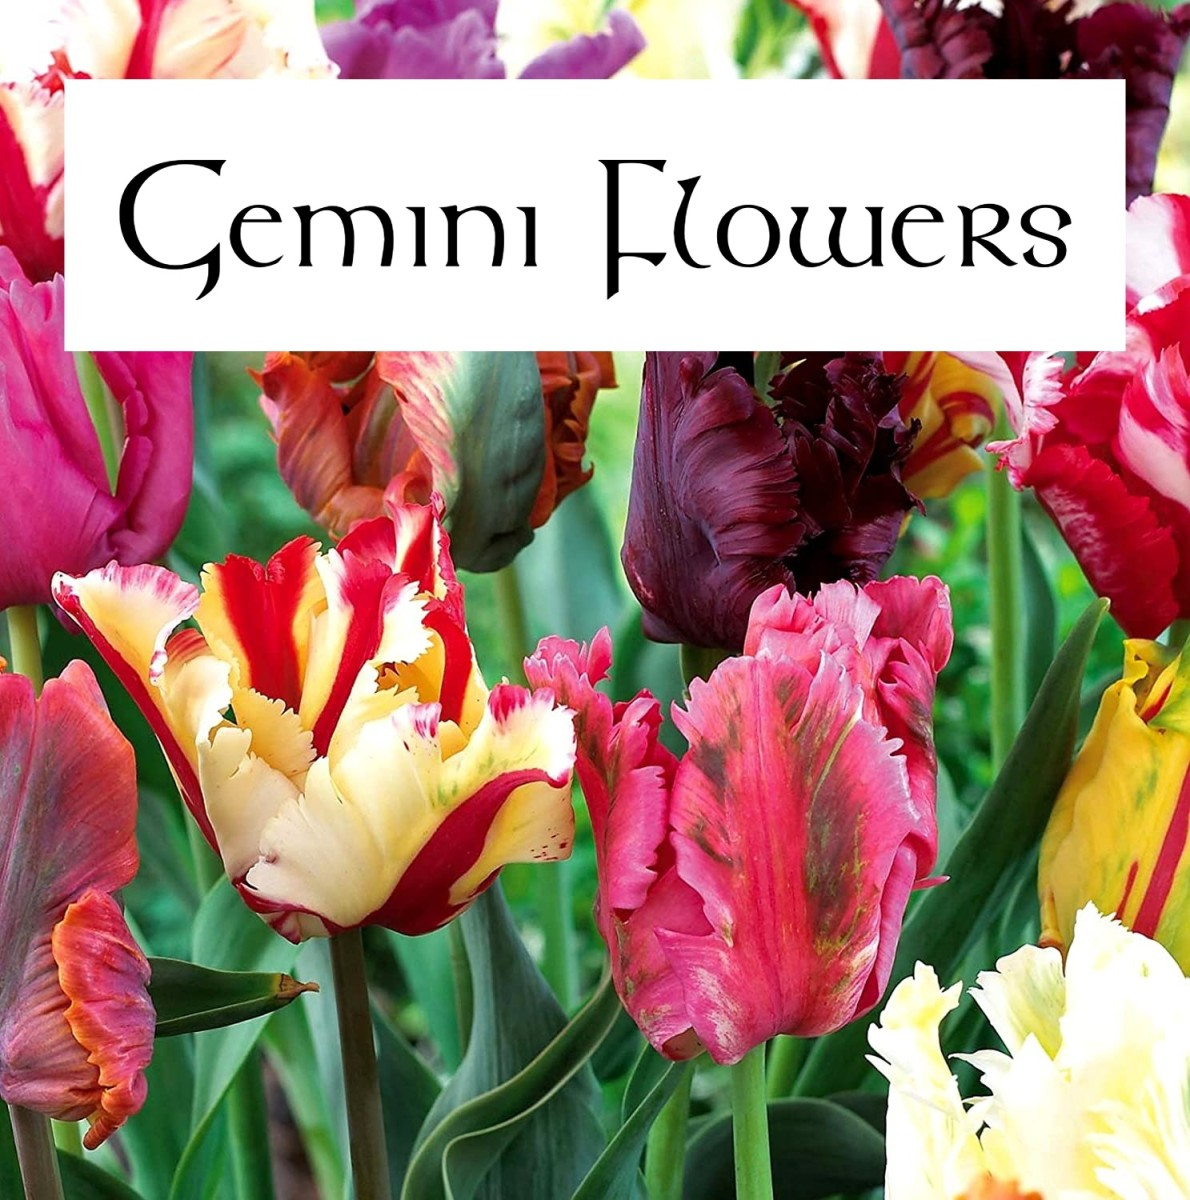 Parrot tulips are beautiful. They have a certain whimsy that is appropriate for the Gemini garden. A Gemini garden should be overflowing with unique flora.